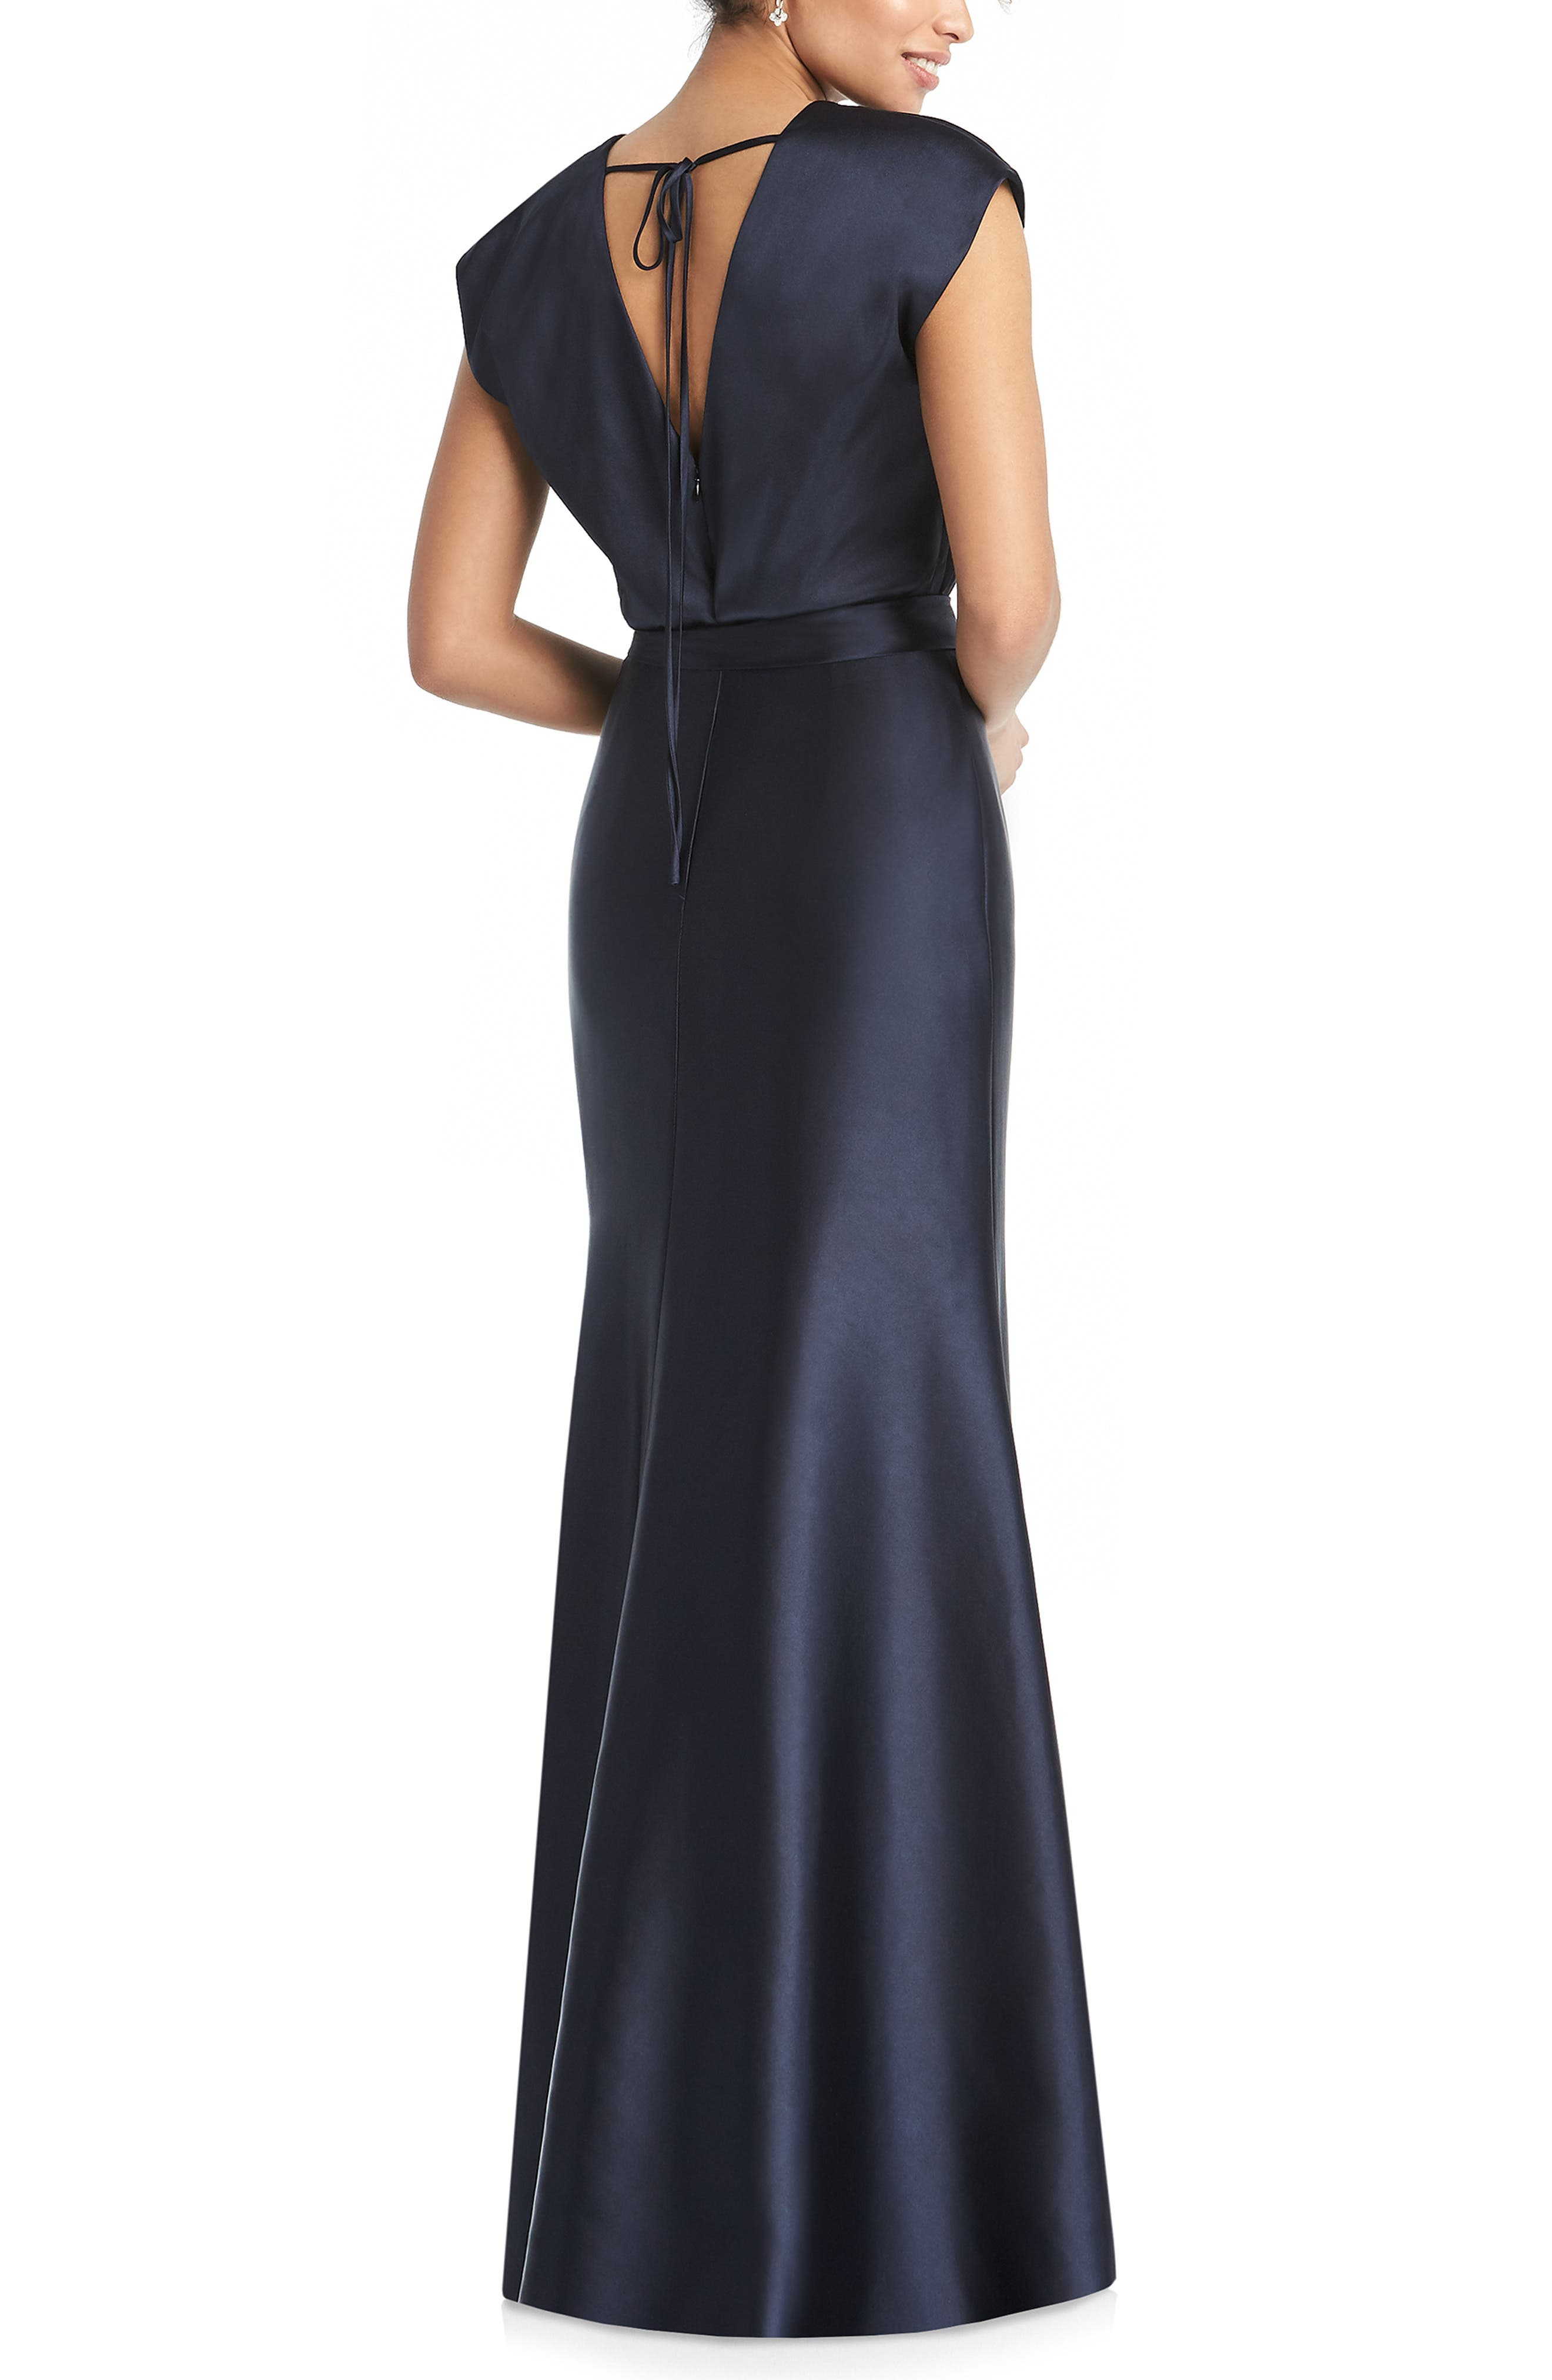 DESSY COLLECTION, V-Neck Stretch Chameuse Gown, Alternate thumbnail 2, color, MIDNIGHT